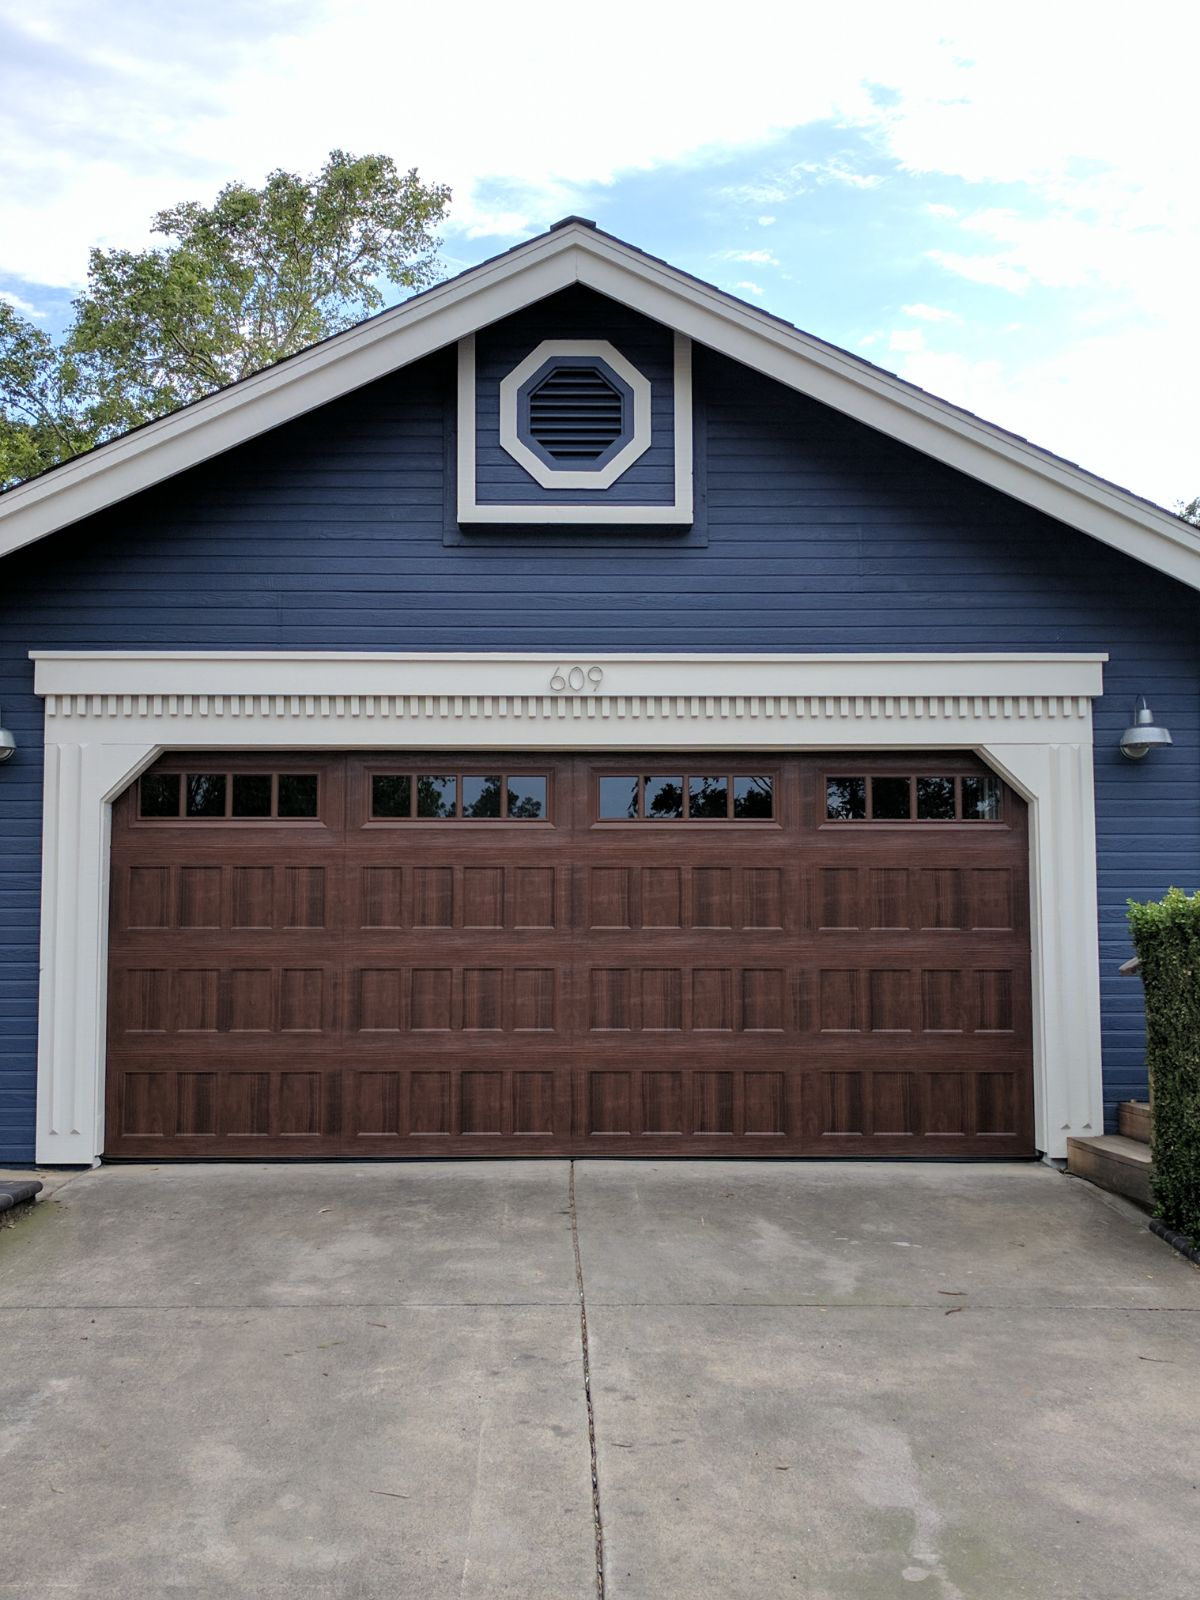 Part Of The Garage Door Update Also Included A New Garage Door Opener As  Well. They Chose A LiftMaster Screw Drive 1/2HP Opener, Which Is Quiet And  A ...